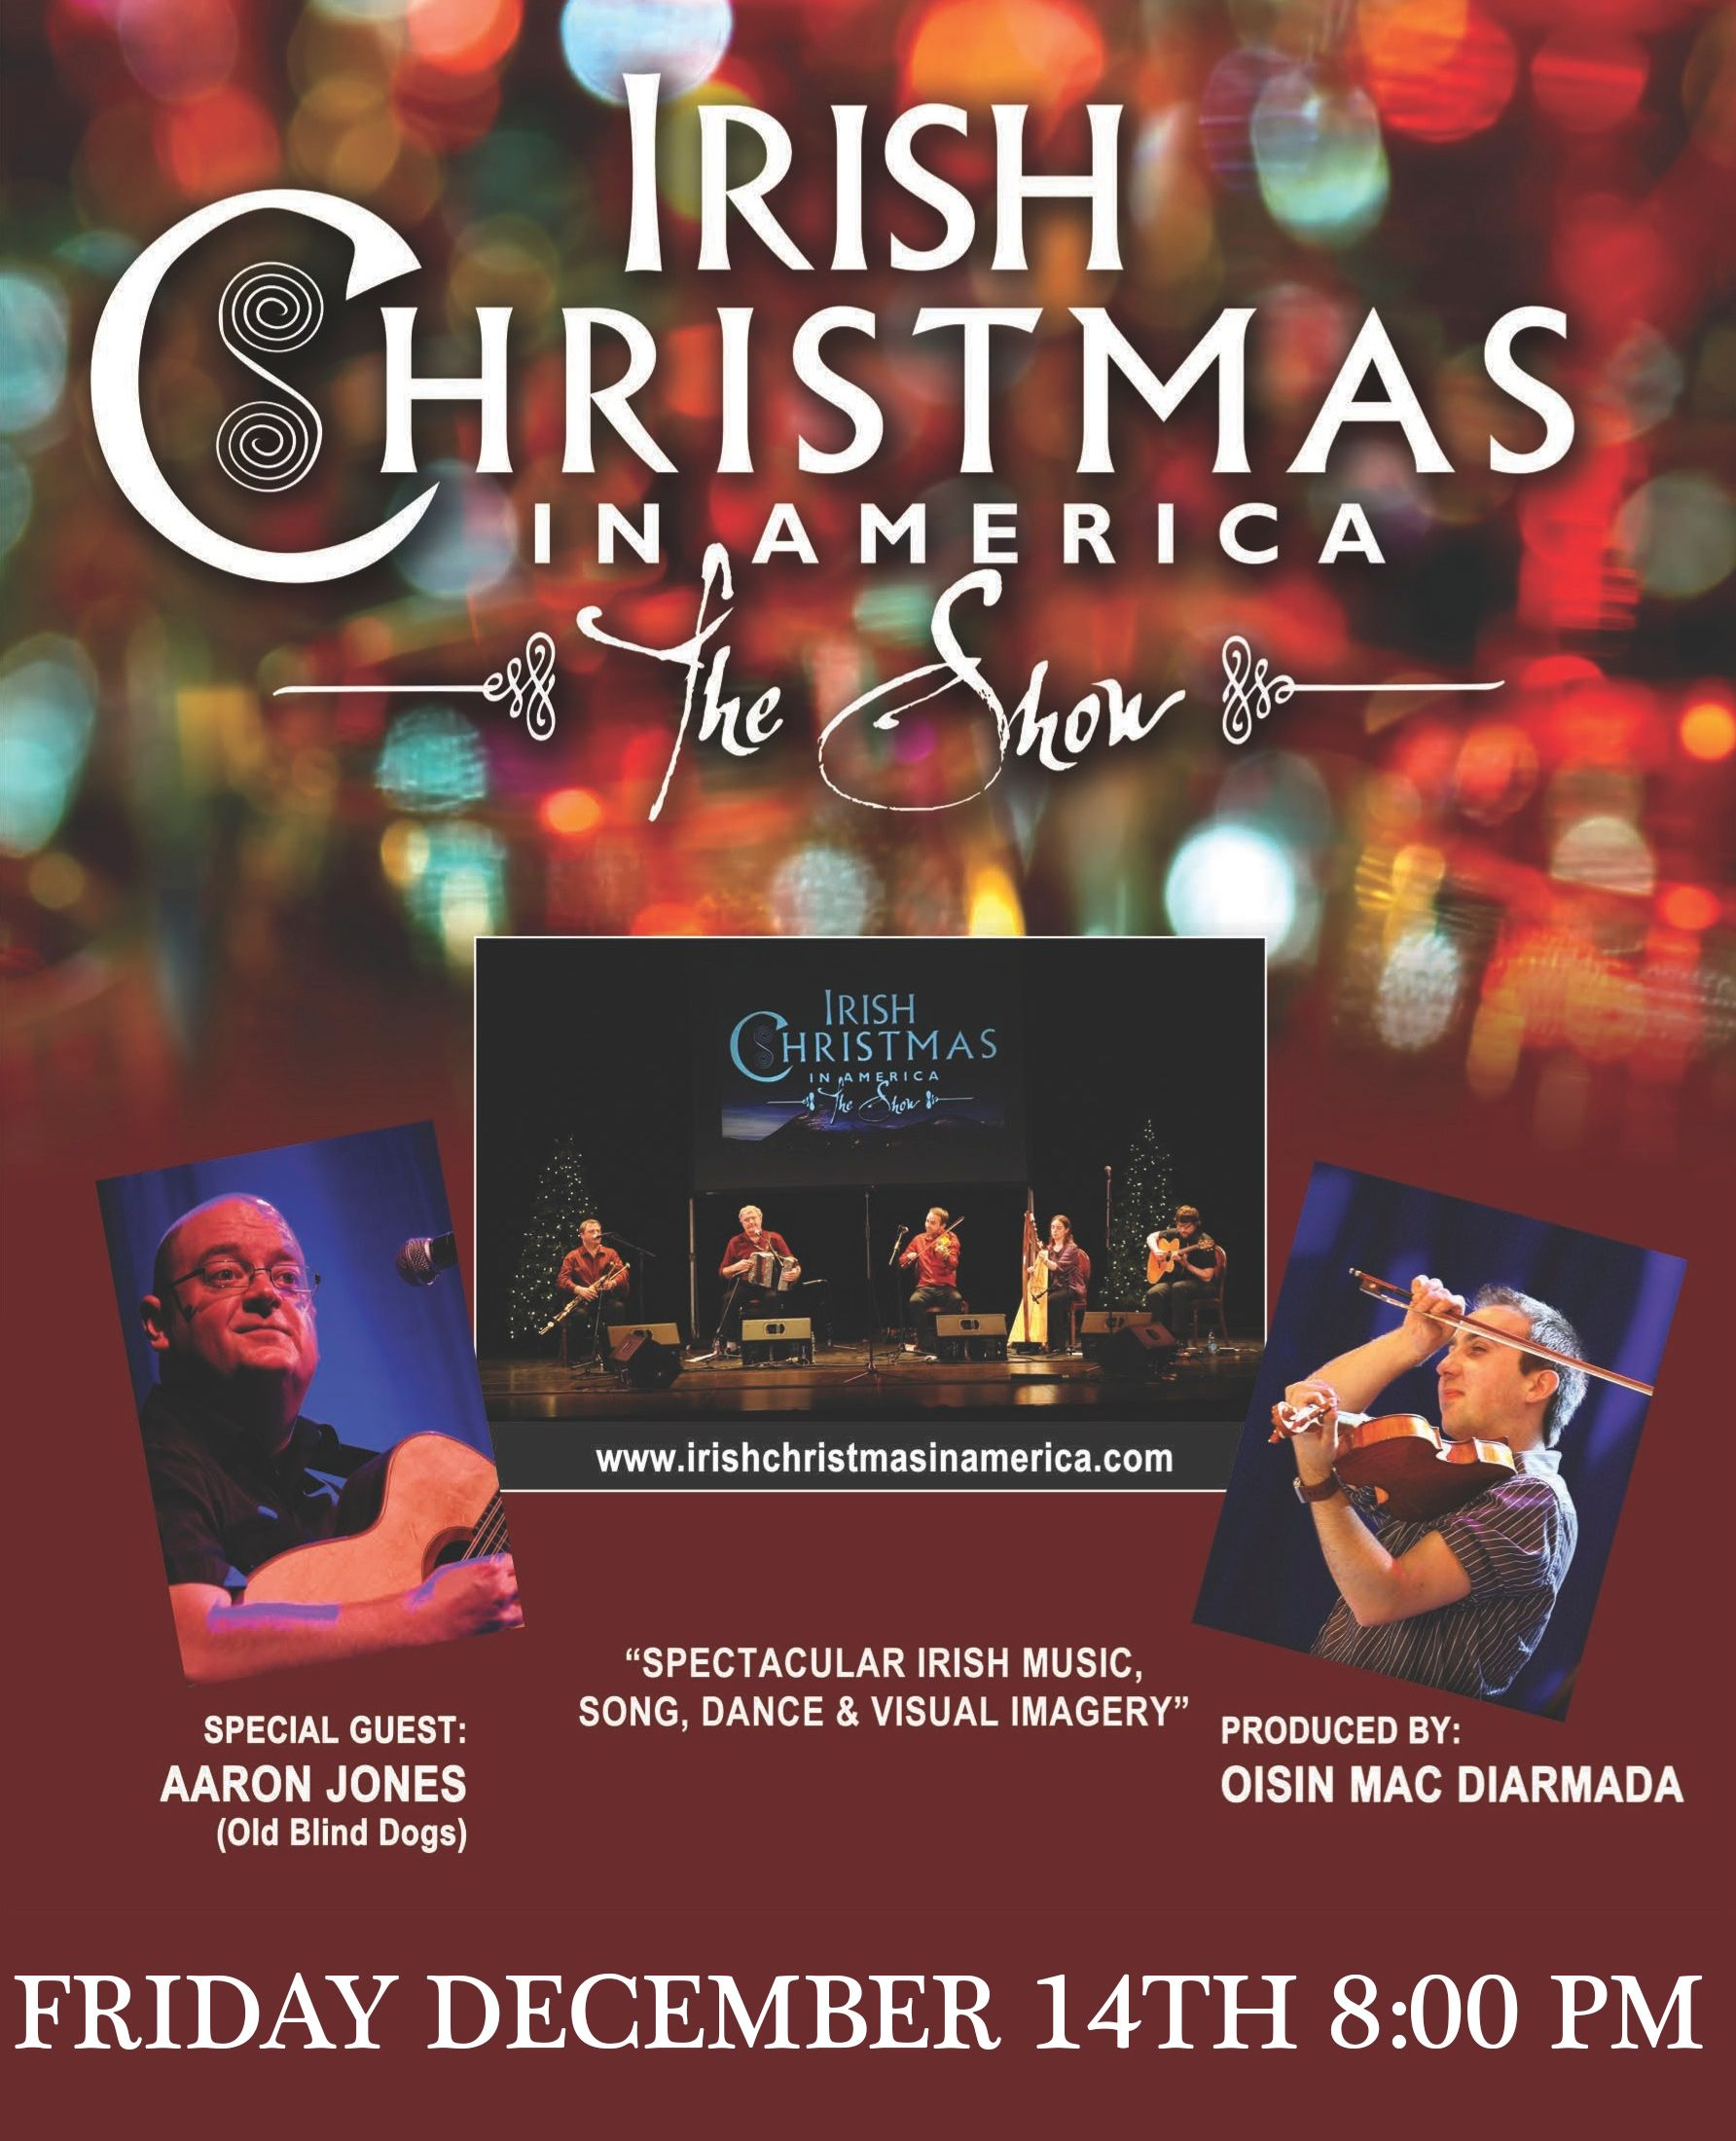 Produced by Oisín Mac Diarmada of award-winning lrish group Téada, the hugely popular Irish Christmas in America show features top Irish musicians, singers and dancers in an engaging performance rich in history, humour and boundless energy.  The 2012 tour features a new dimension with the addition of special guest singer Aaron Jones of Scottish super-group Old Blind Dogs. Séamus Begley from West Kerry once again rejoins the tour with his charming wit and stunning vocal prowess.